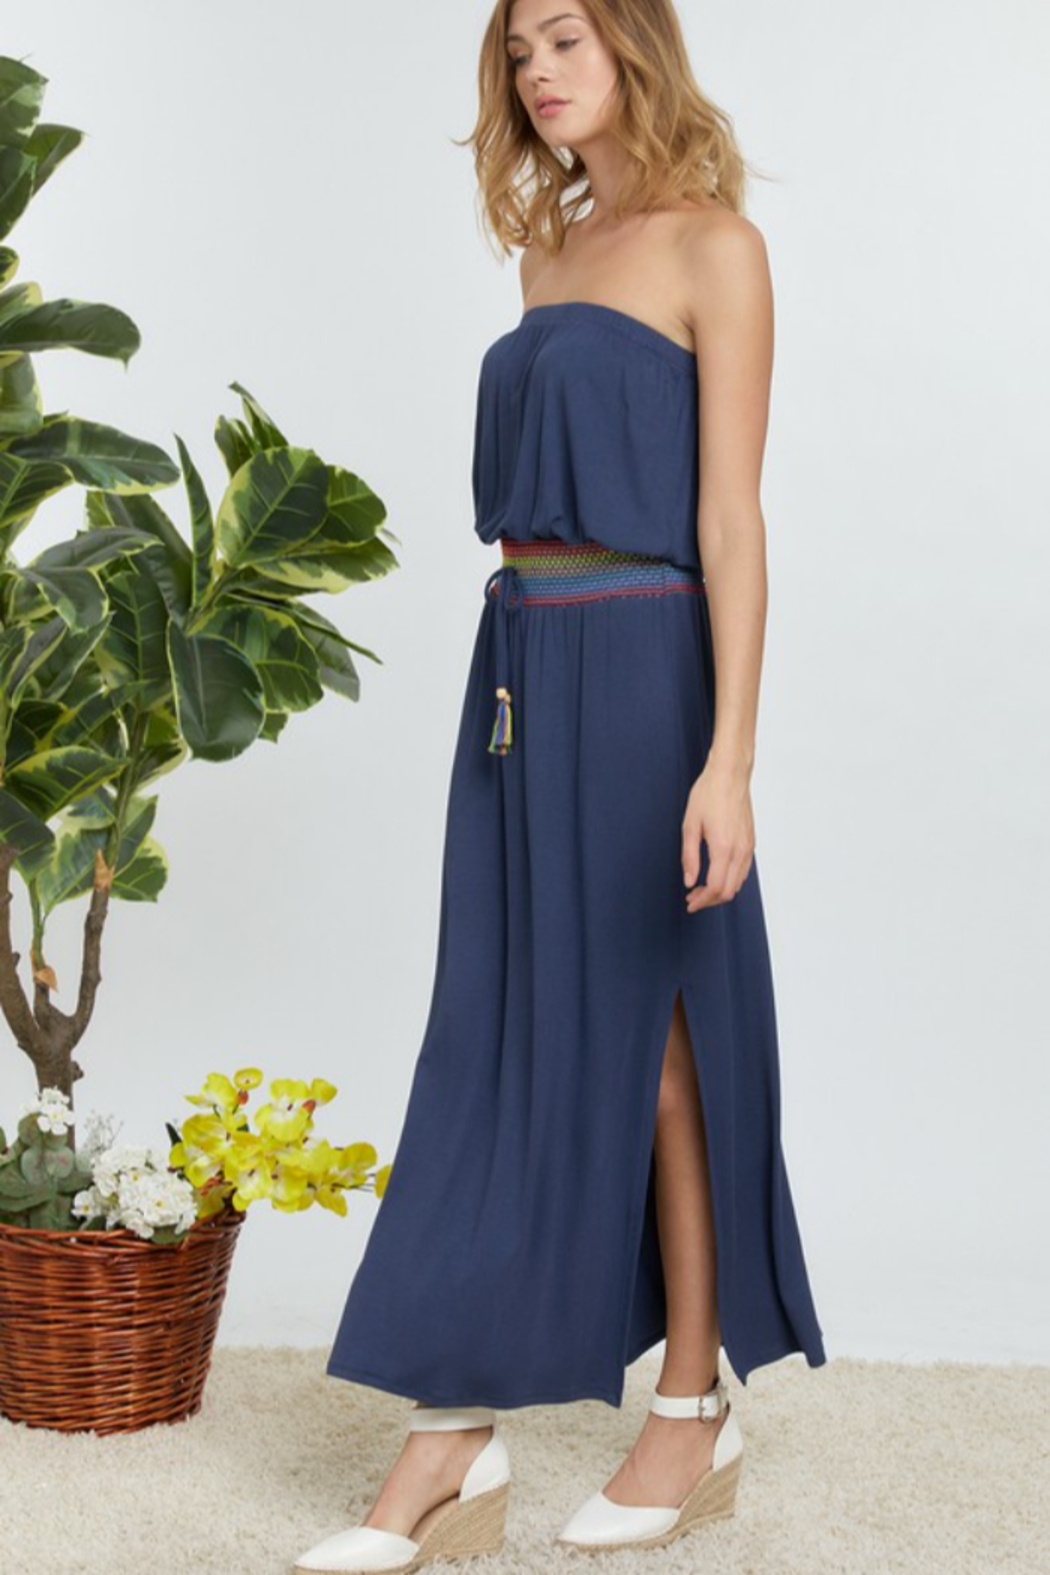 DAVI AND DANI Solid Off Shoulder Maxi Dress - Front Full Image